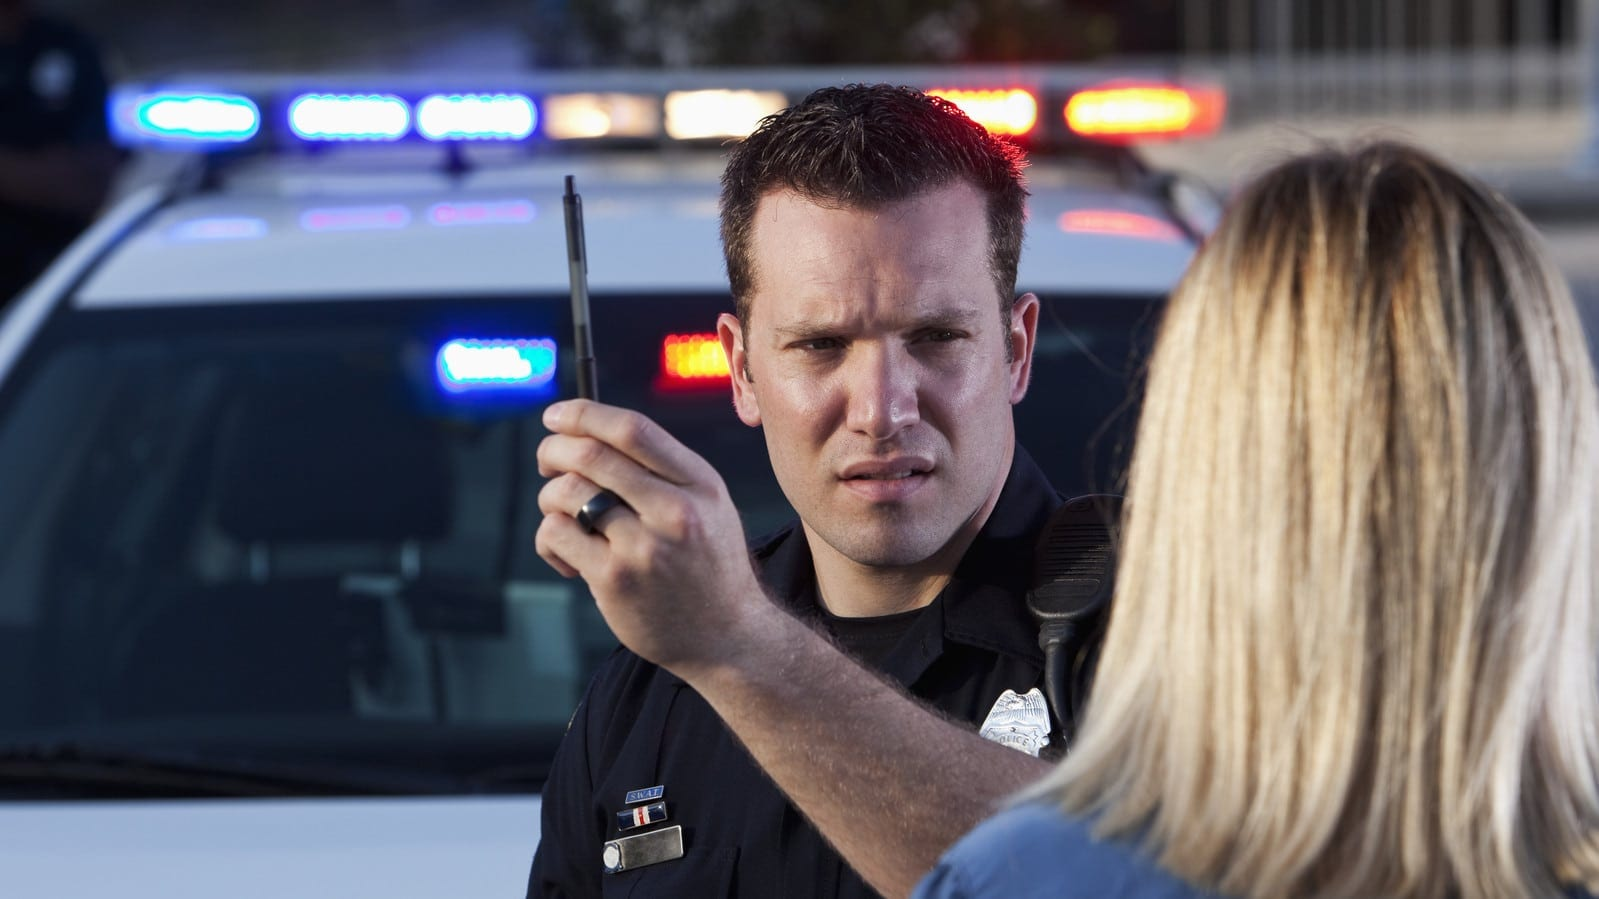 Police officer conducting sobriety test stock photo